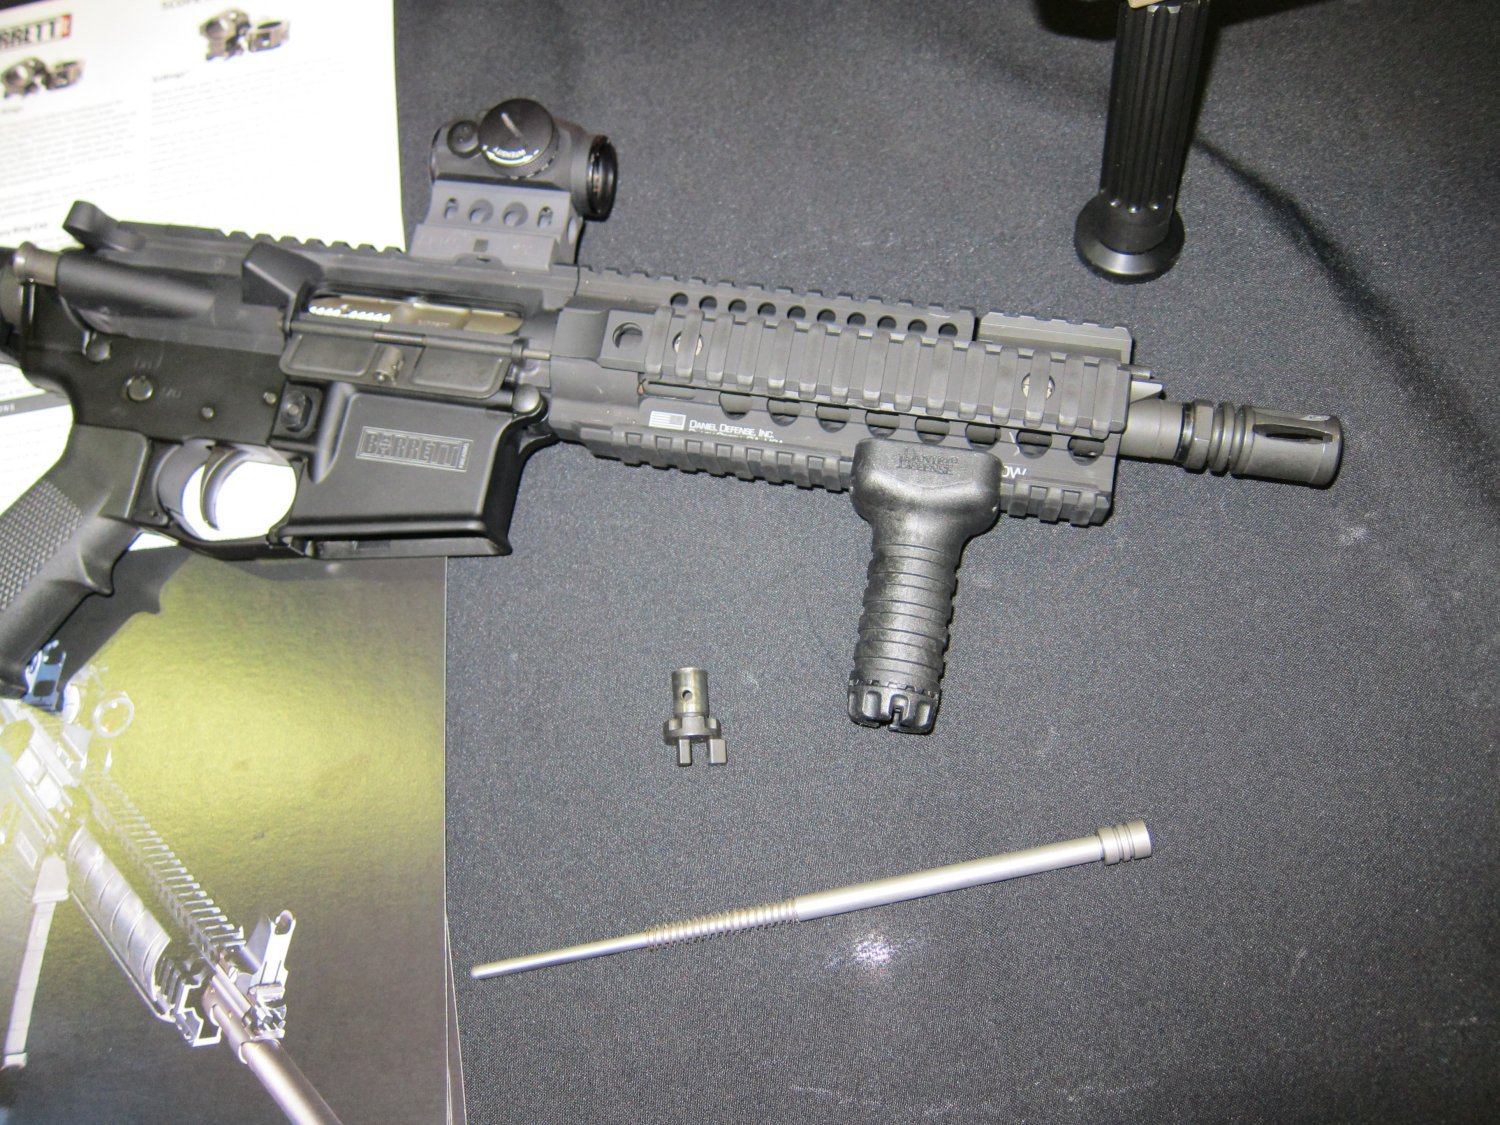 Barrett REC7 5.56mm AR SBR 12 Barrett REC7 5.56 8 Piston AR PDW Displayed at SOFIC 2010 (Photos!): 5.56mm NATO Piston Driven Tactical AR Carbine/SBR for Military Special Operations Forces (SOF)